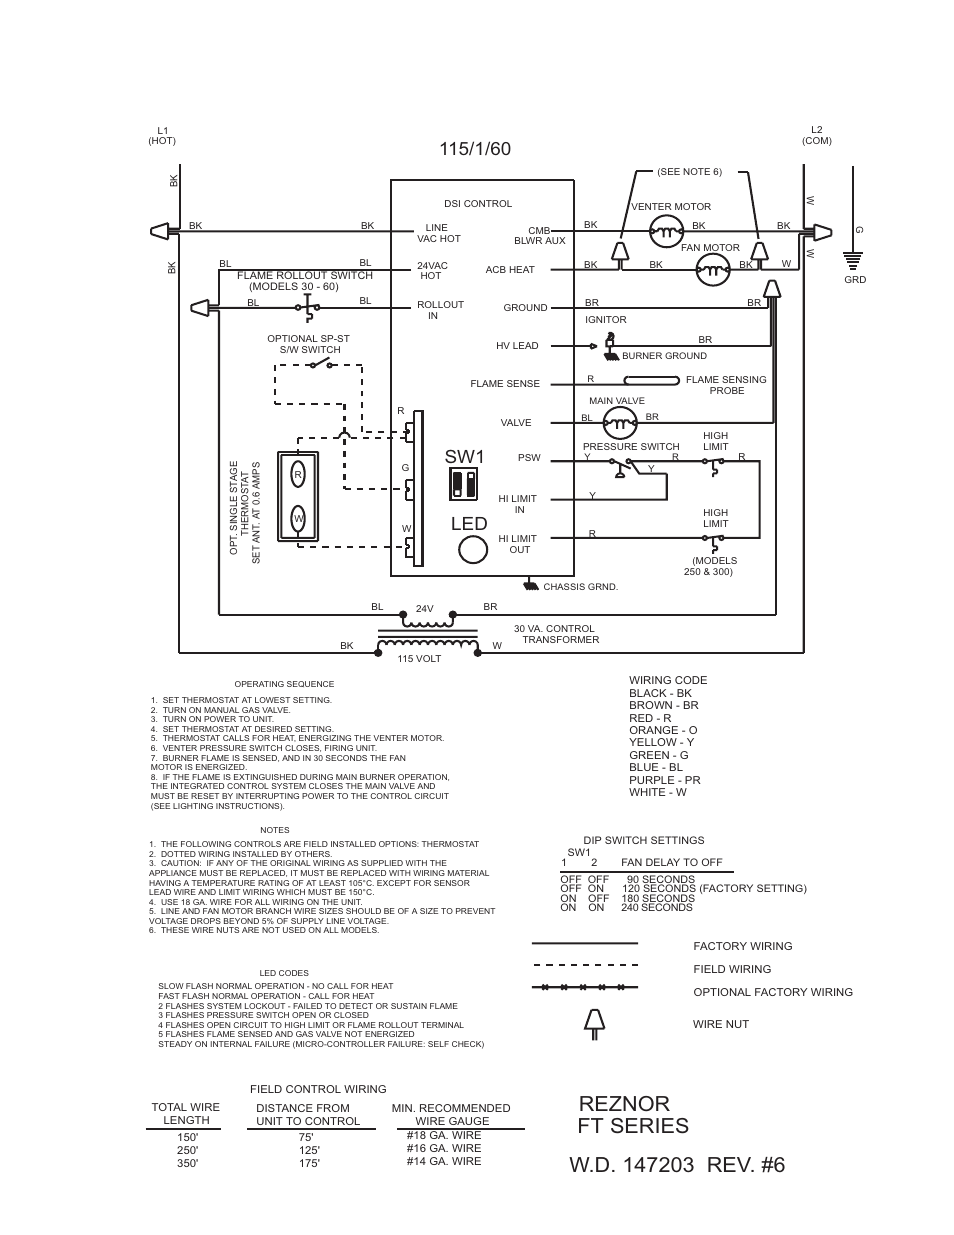 reznor ft unit installation manual page13?resized665%2C861 reznor heater wiring schematic efcaviation com unit heater wiring diagram at creativeand.co